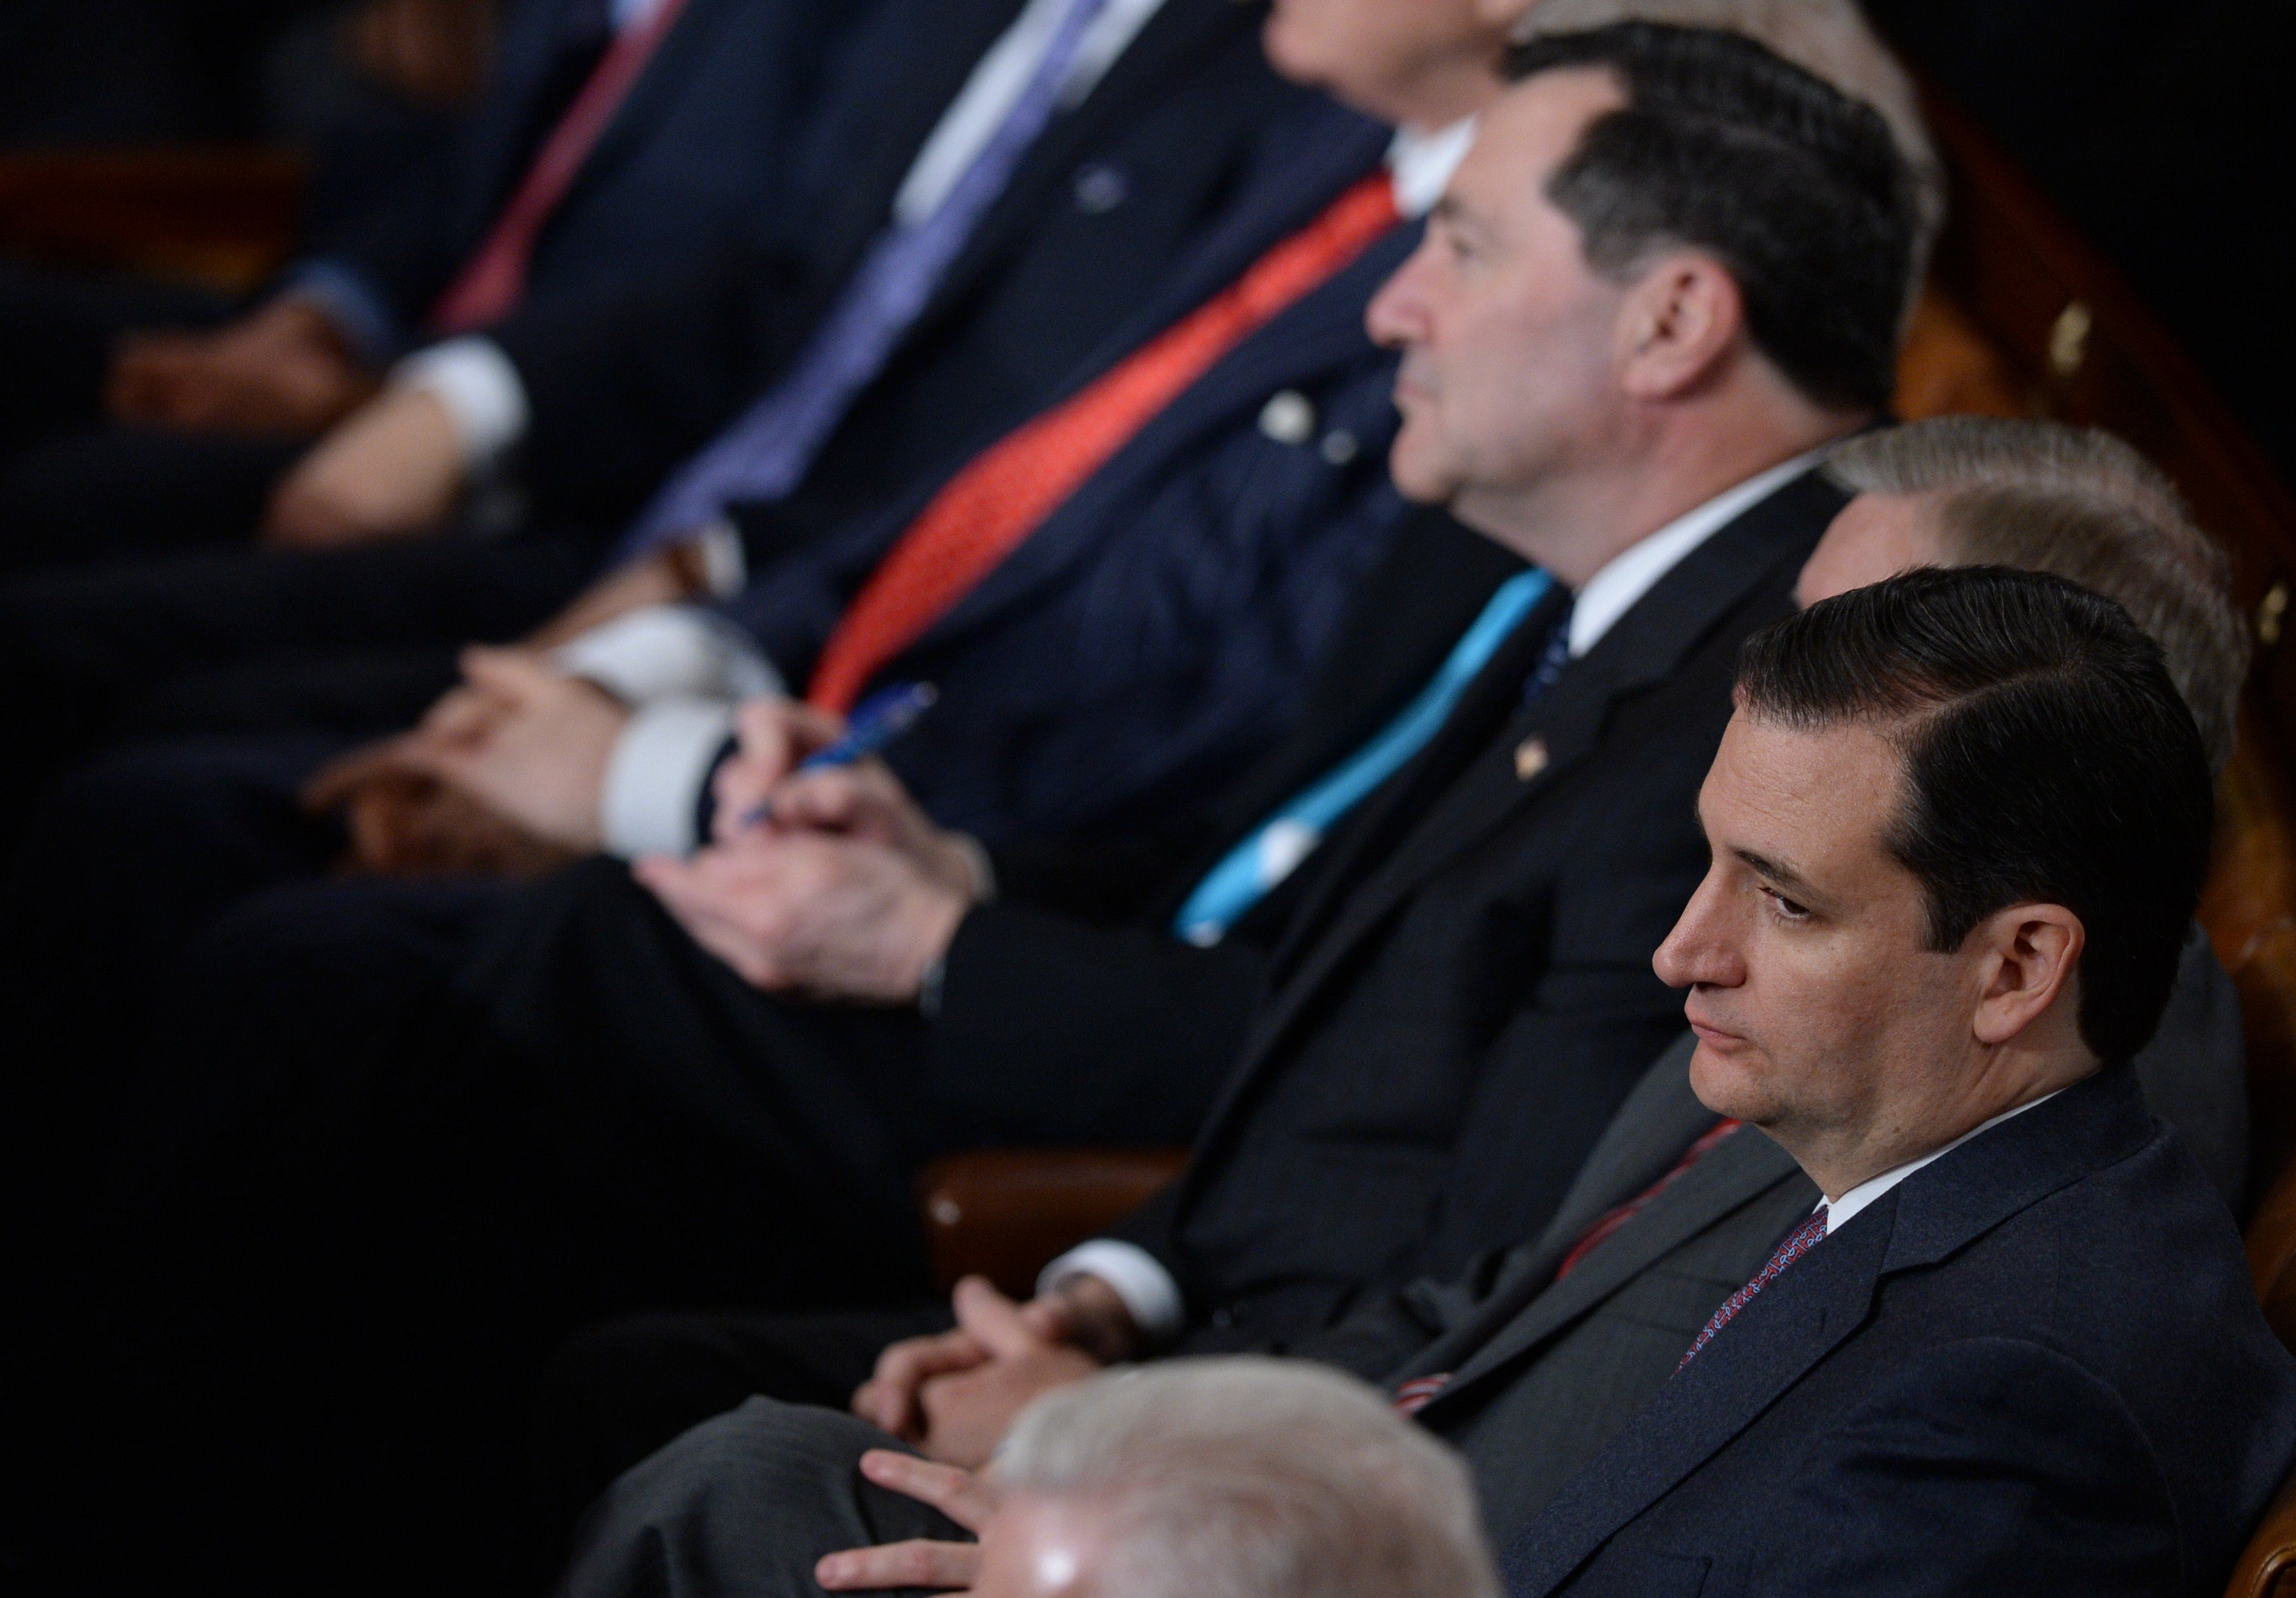 Republican Senator from Texas Ted Cruz listens to President Barack Obama deliver the State of the Union address.